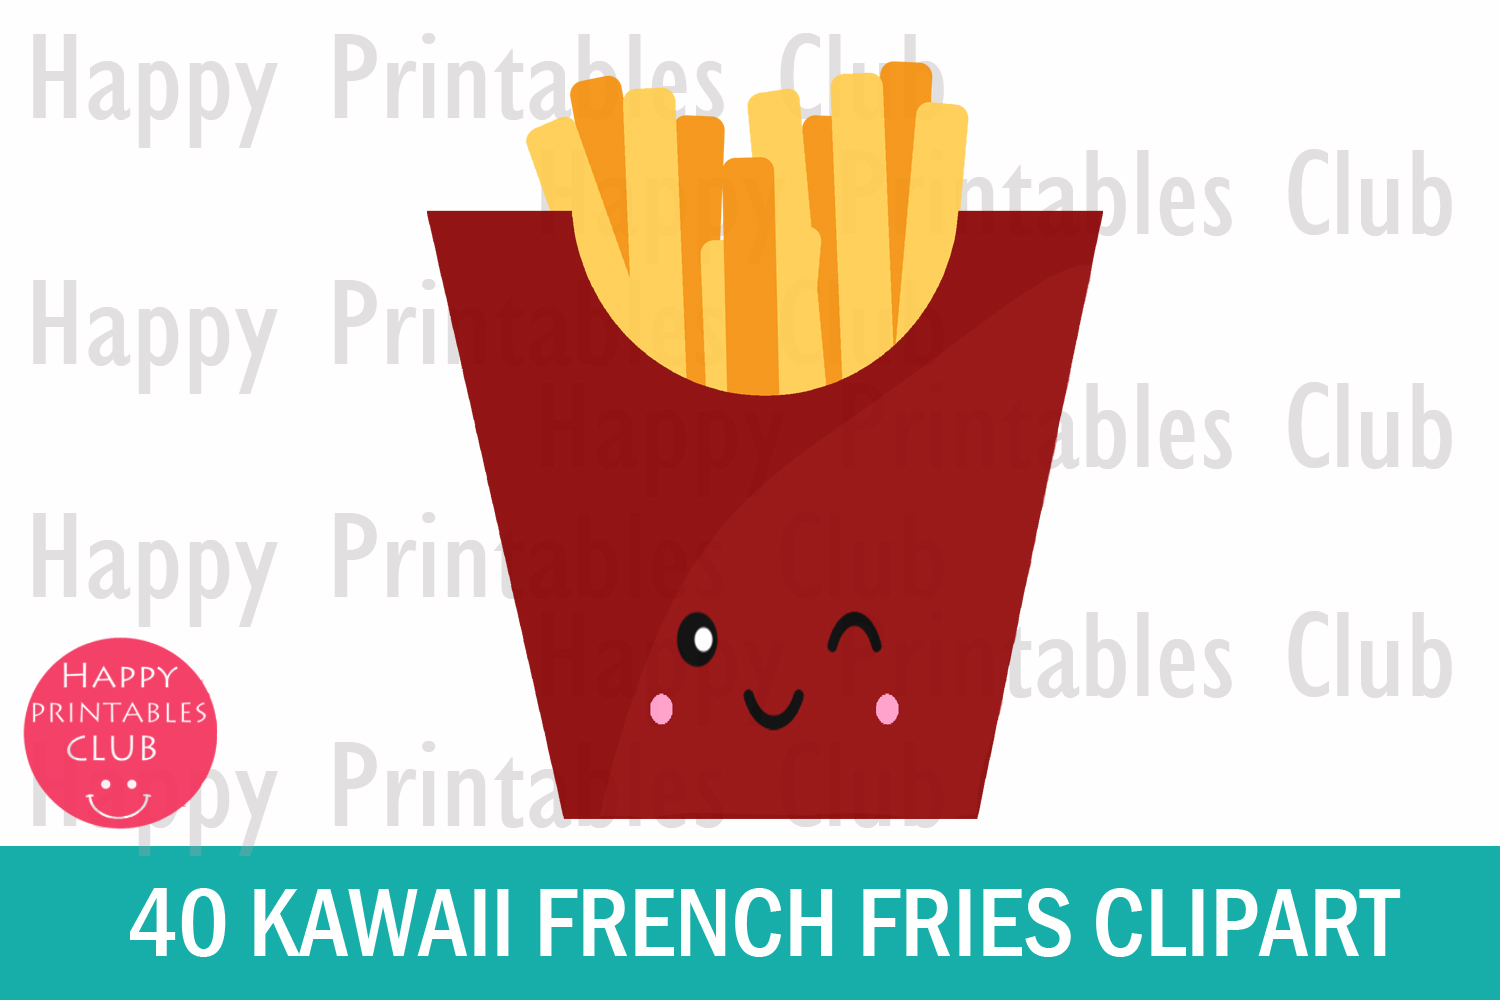 40 Kawaii French Fries Clipart- French Fries Clipart Images example image 2